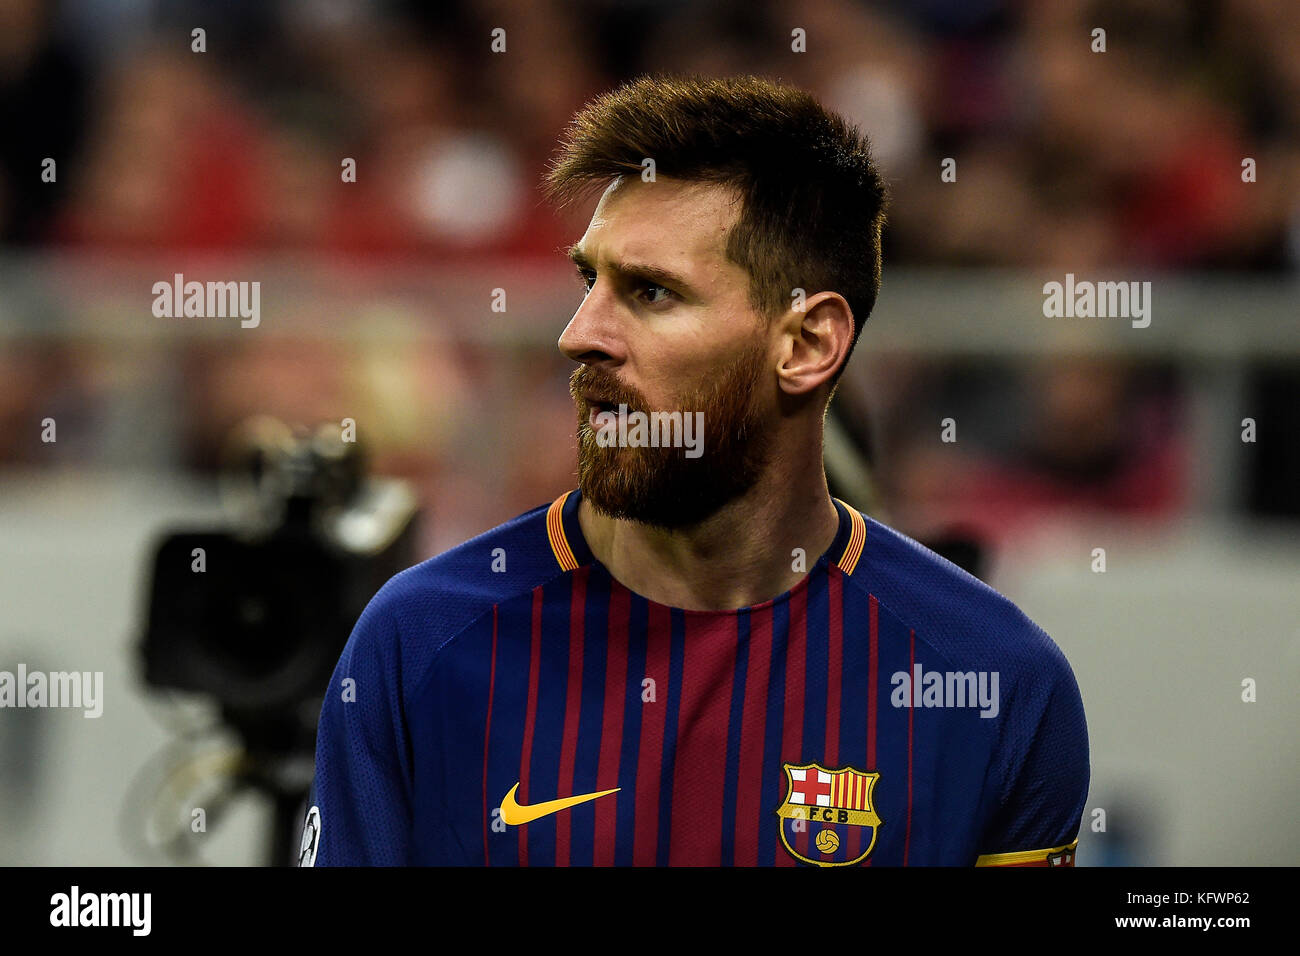 Athens, Greece. 31st Oct, 2017. Lionel Messi of Barcelona during the Champions League football match between Olympiacos Stock Photo